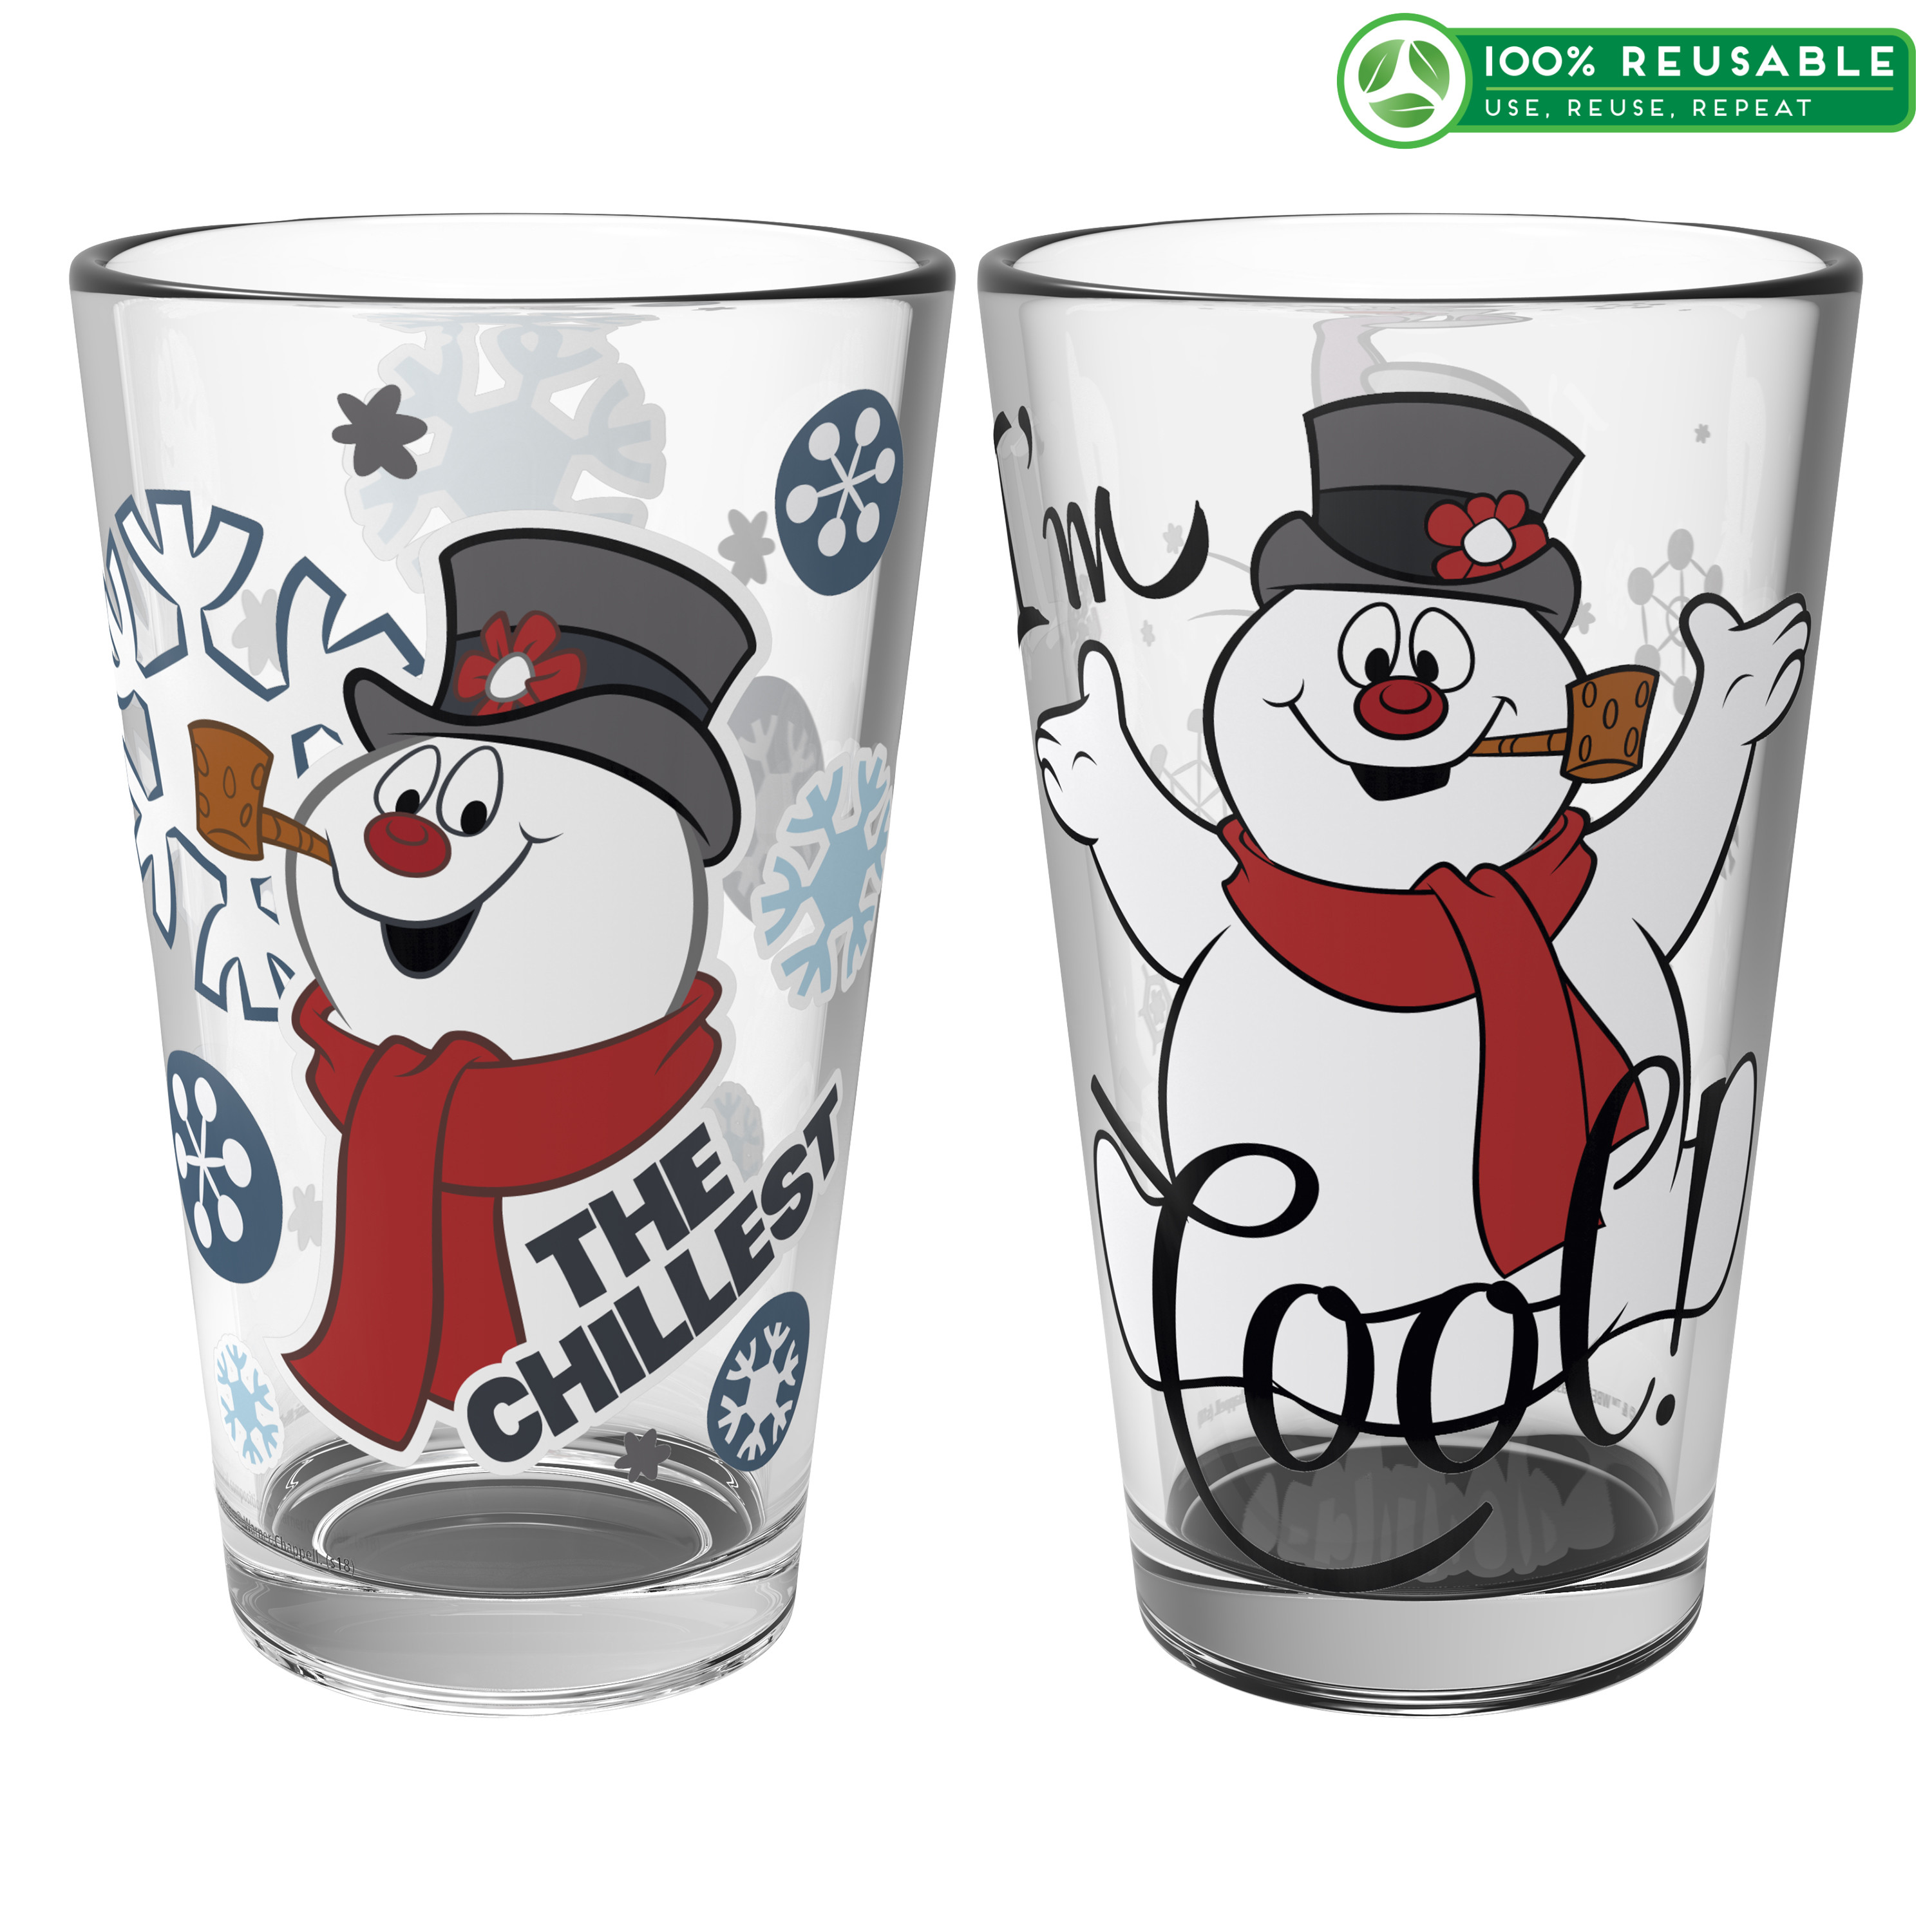 Christmas Collectibles 16 ounce Pint Glasses, Frosty the Snowman, 2-piece set slideshow image 1